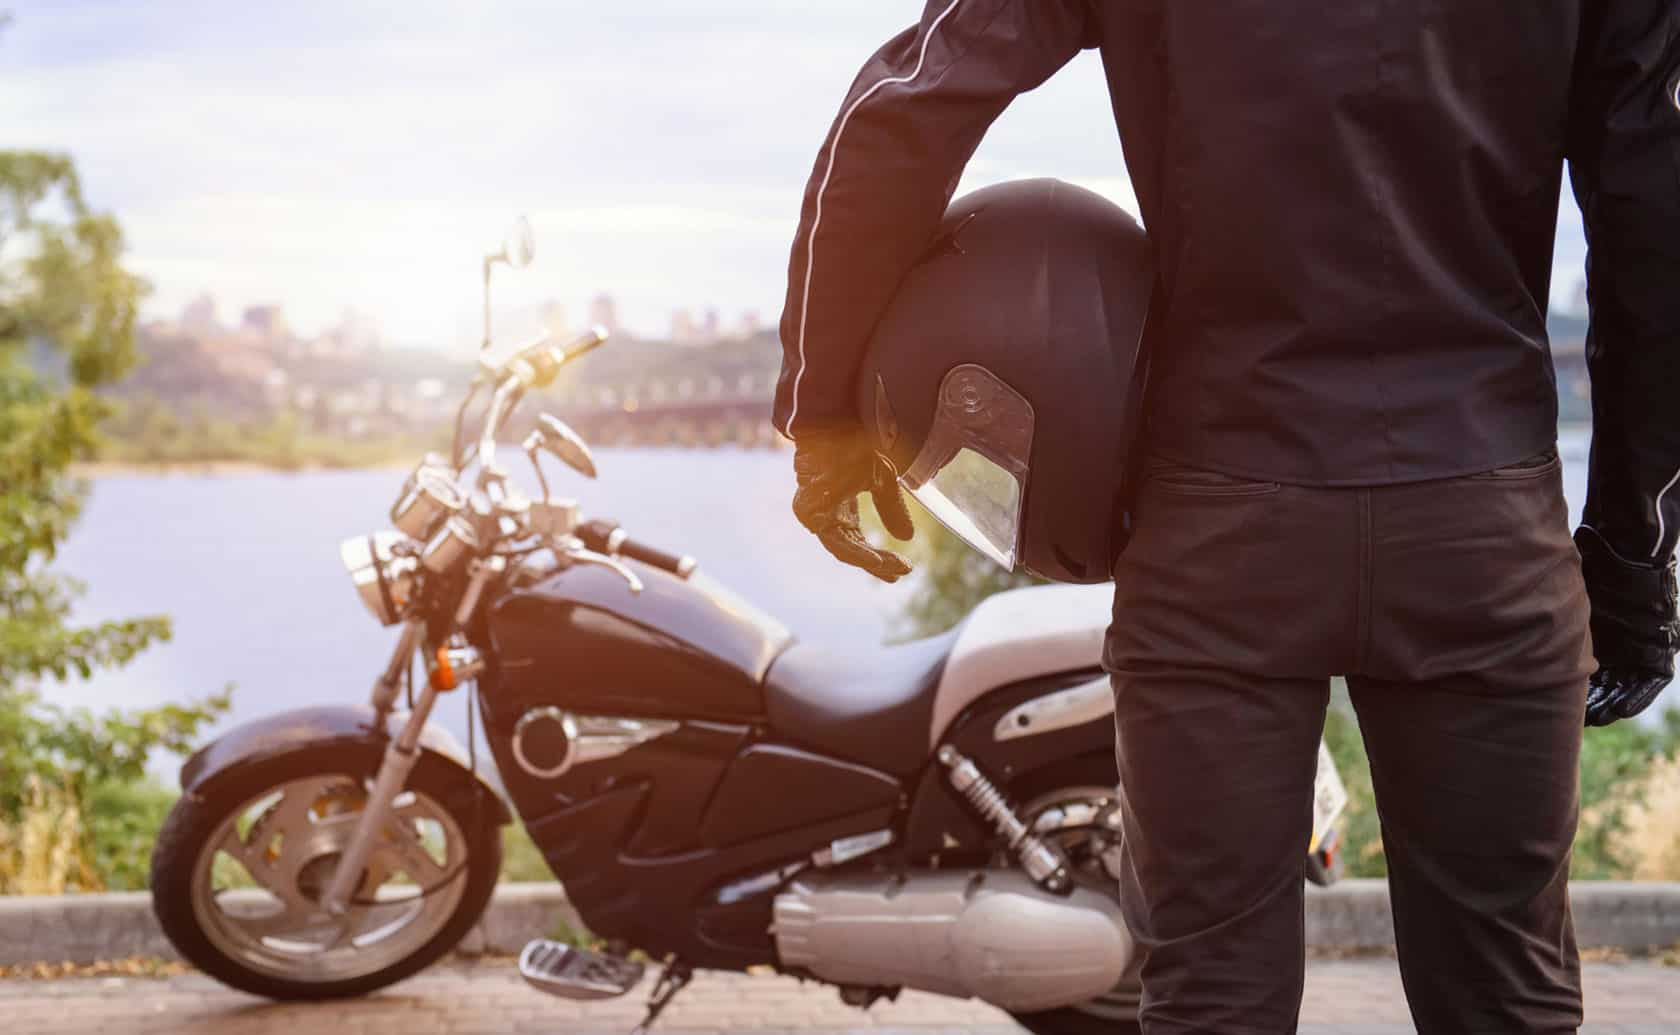 Motorcycle Laws California | Inland Empire Motorcycle Law